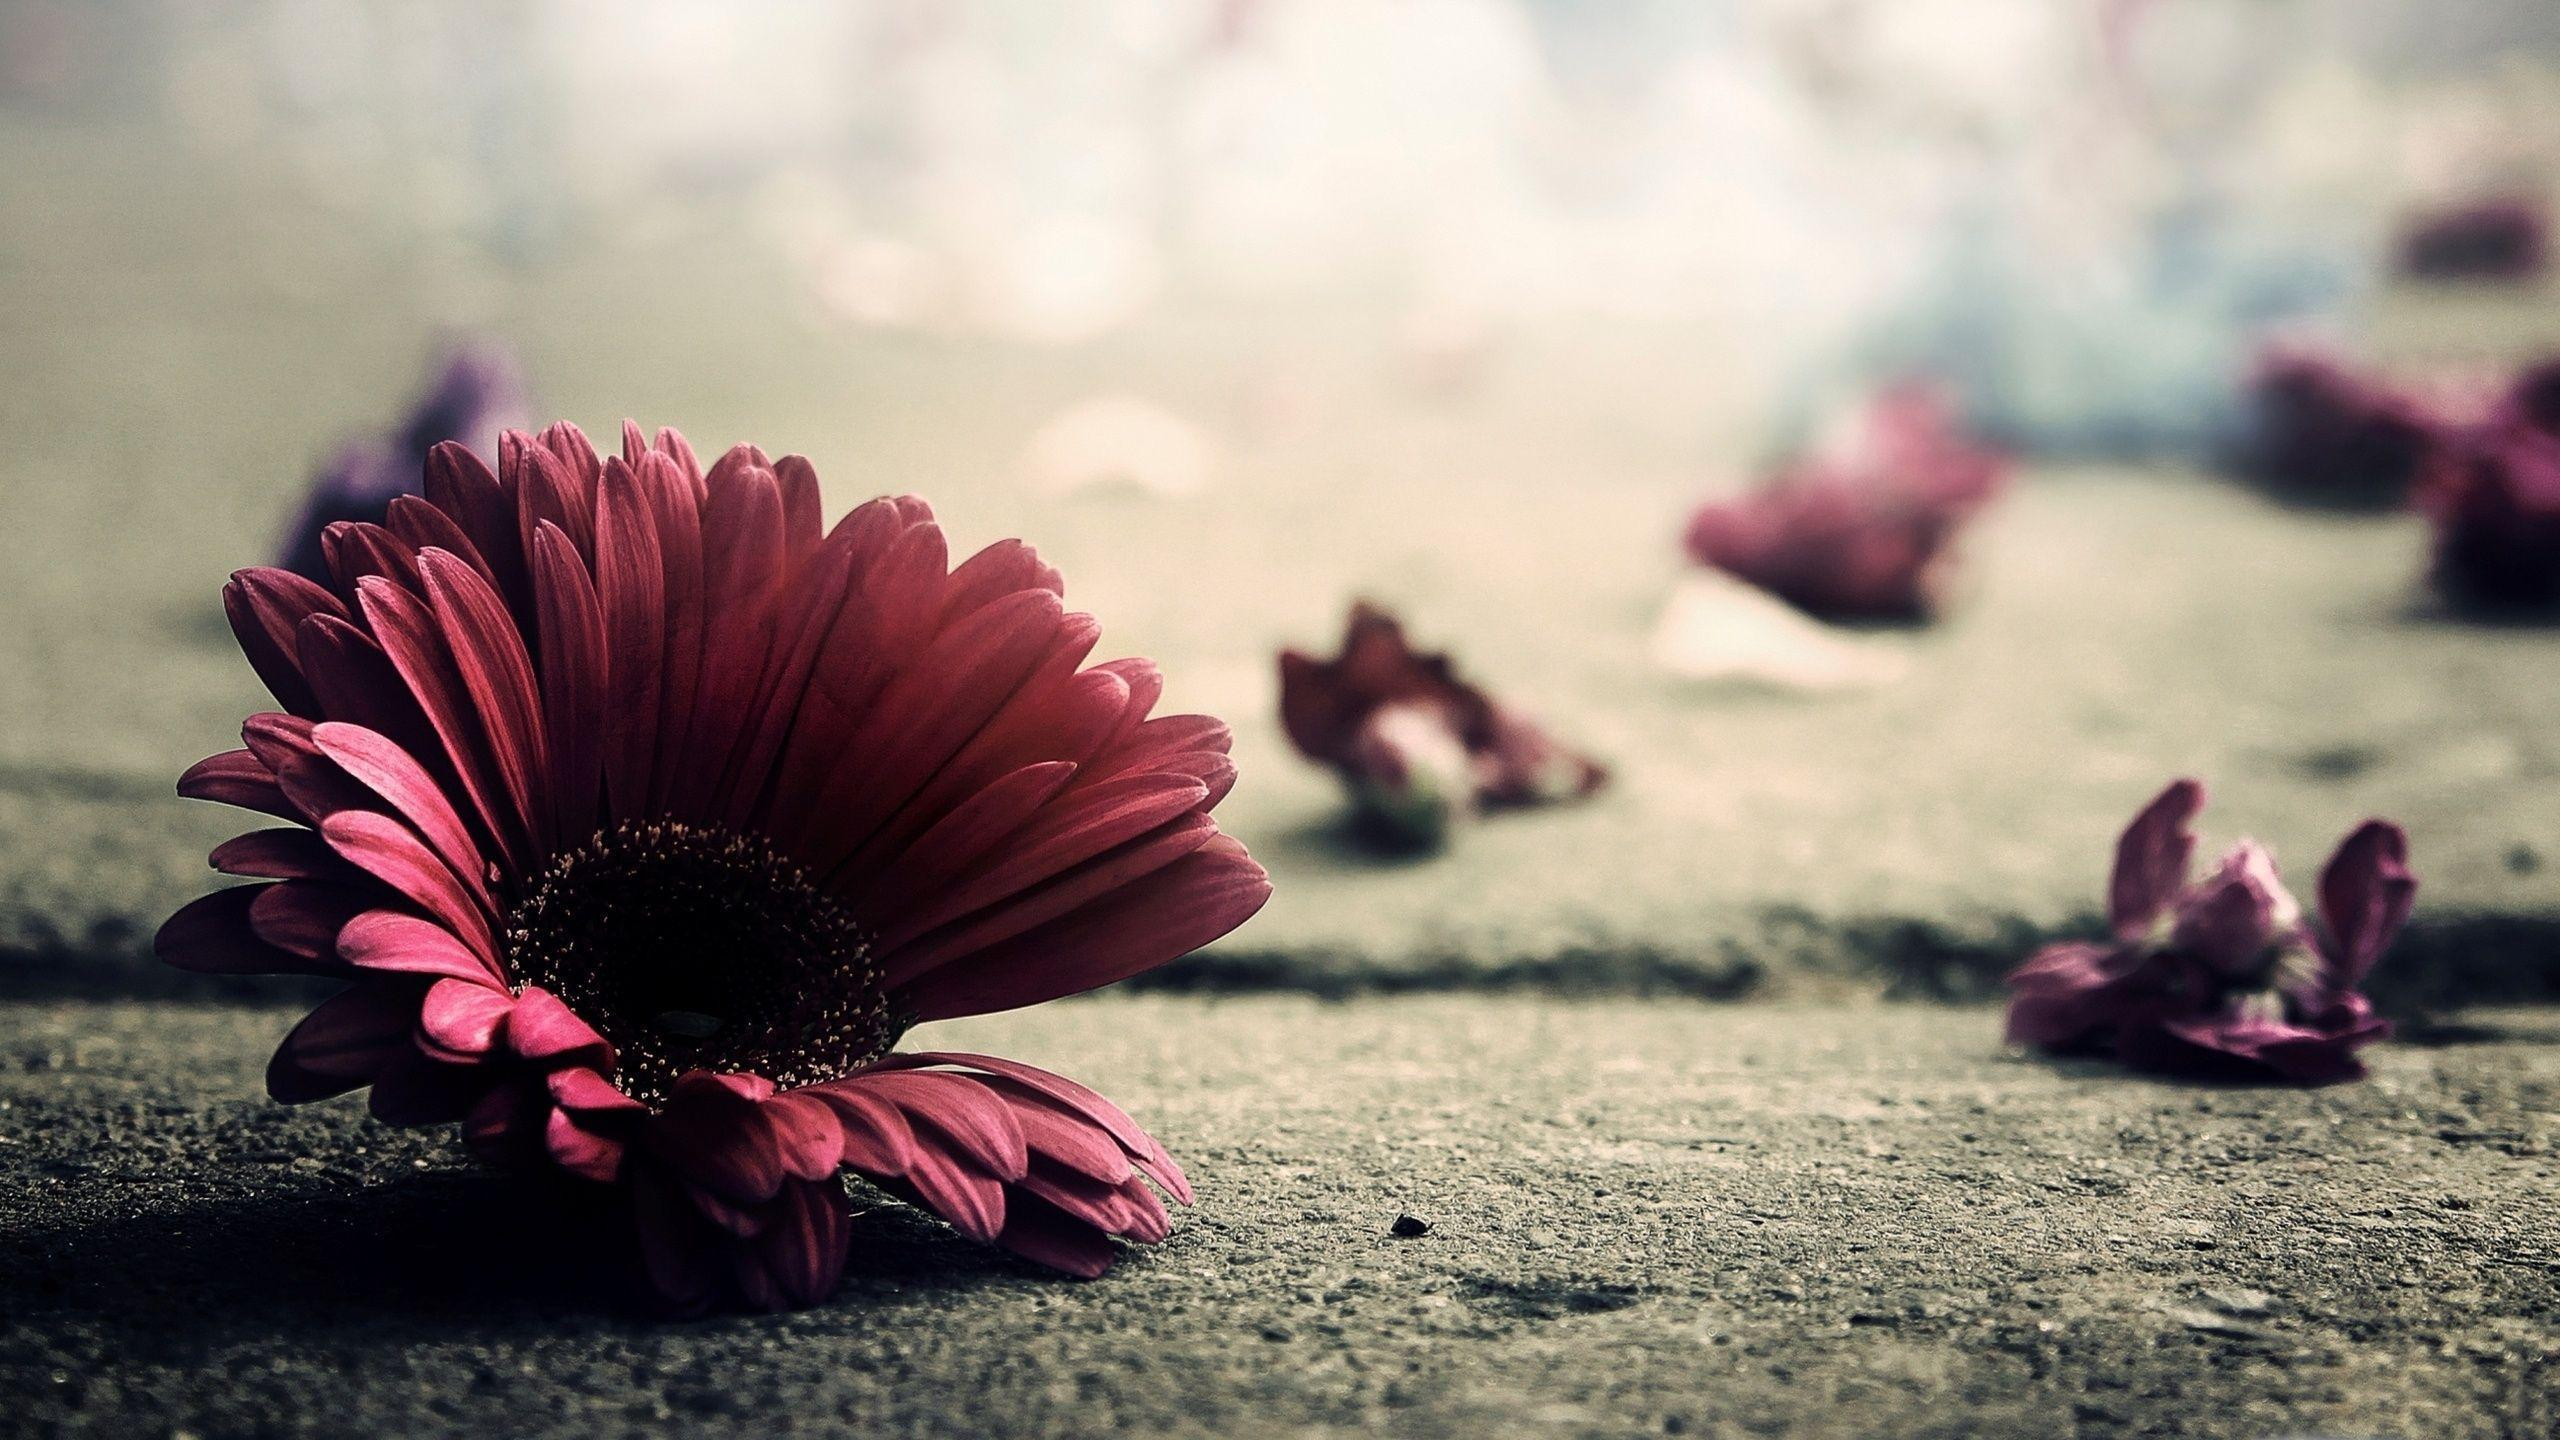 Vintage Wallpapers HD Flower Pictures